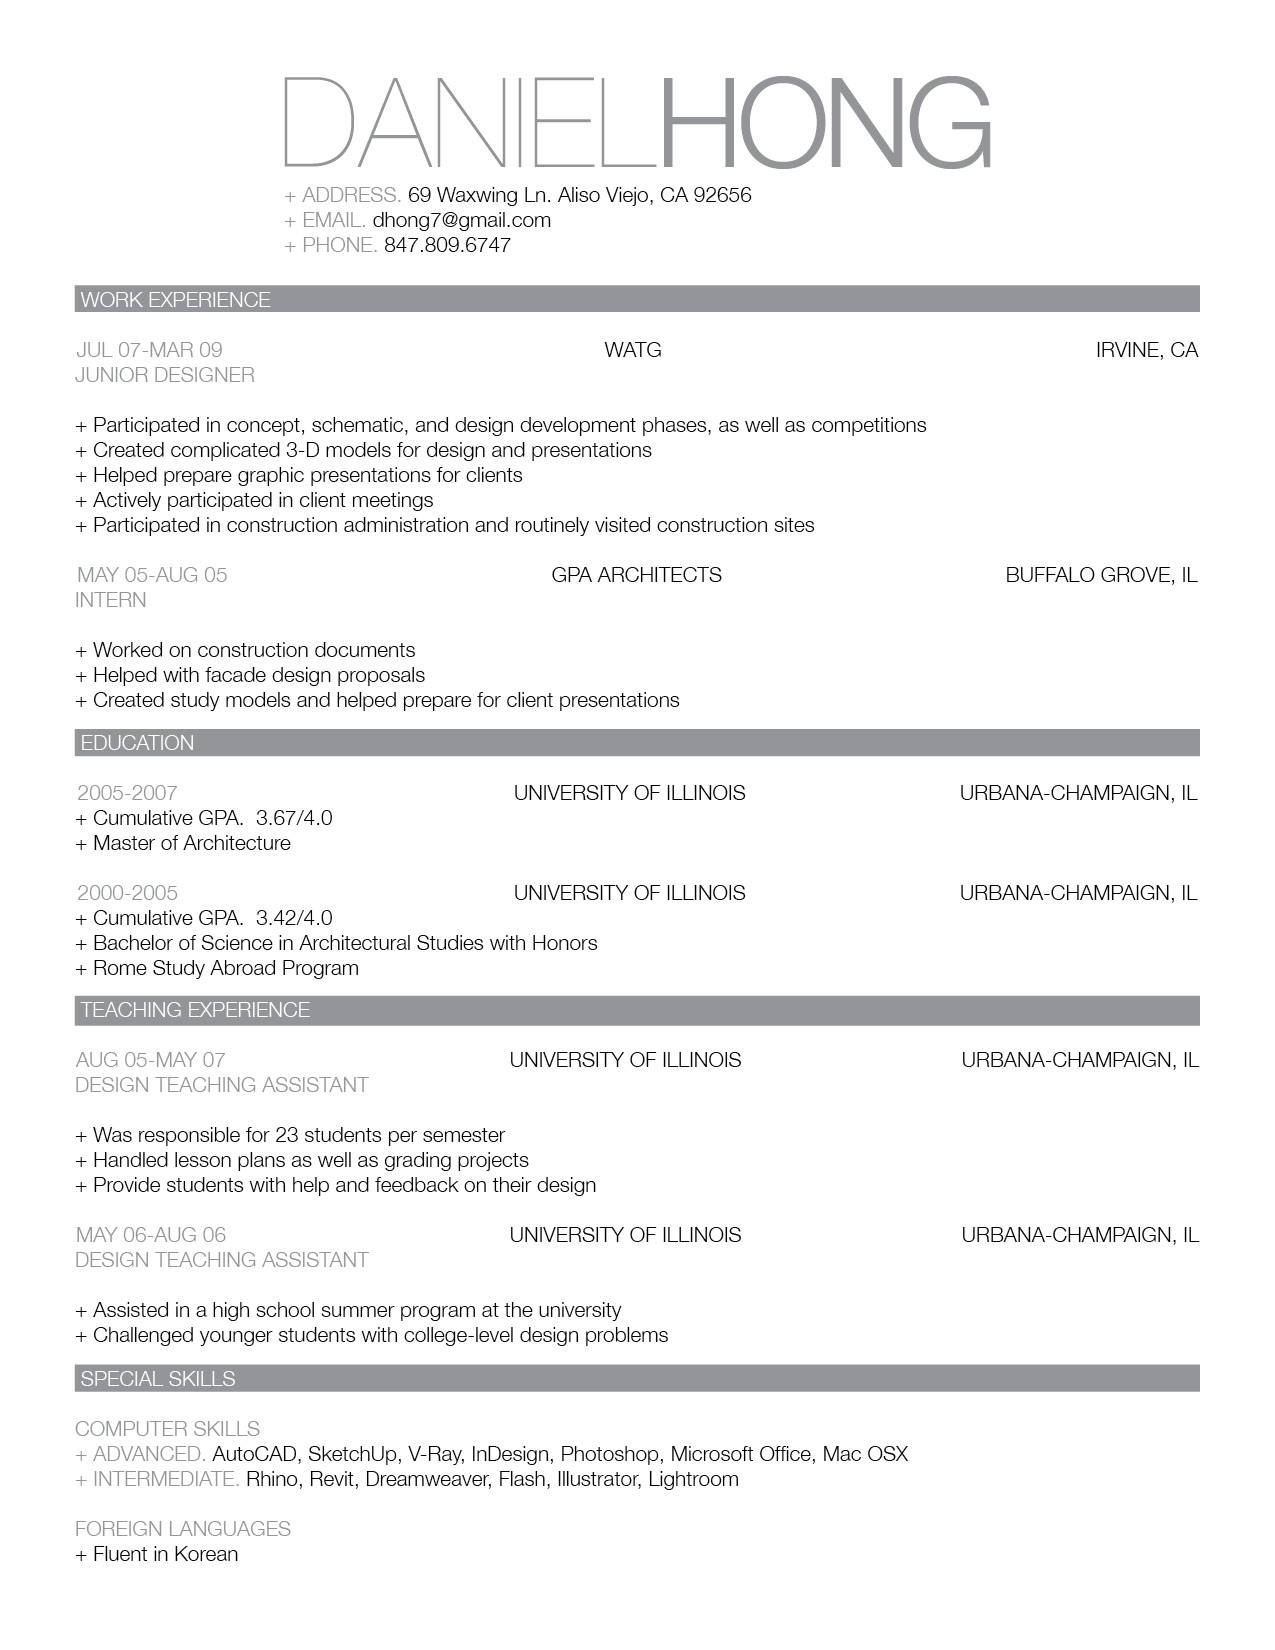 Opposenewapstandardsus  Winning Resume Chronological Basic Basic Sample Resume Cover Letter  With Entrancing Simple  With Amusing Pre K Teacher Resume Also Veteran Resume In Addition Include Gpa On Resume And Cheap Resumes As Well As Free Sample Resume Templates Additionally Resume Example For College Student From Writeupdonwebhomeipnet With Opposenewapstandardsus  Entrancing Resume Chronological Basic Basic Sample Resume Cover Letter  With Amusing Simple  And Winning Pre K Teacher Resume Also Veteran Resume In Addition Include Gpa On Resume From Writeupdonwebhomeipnet